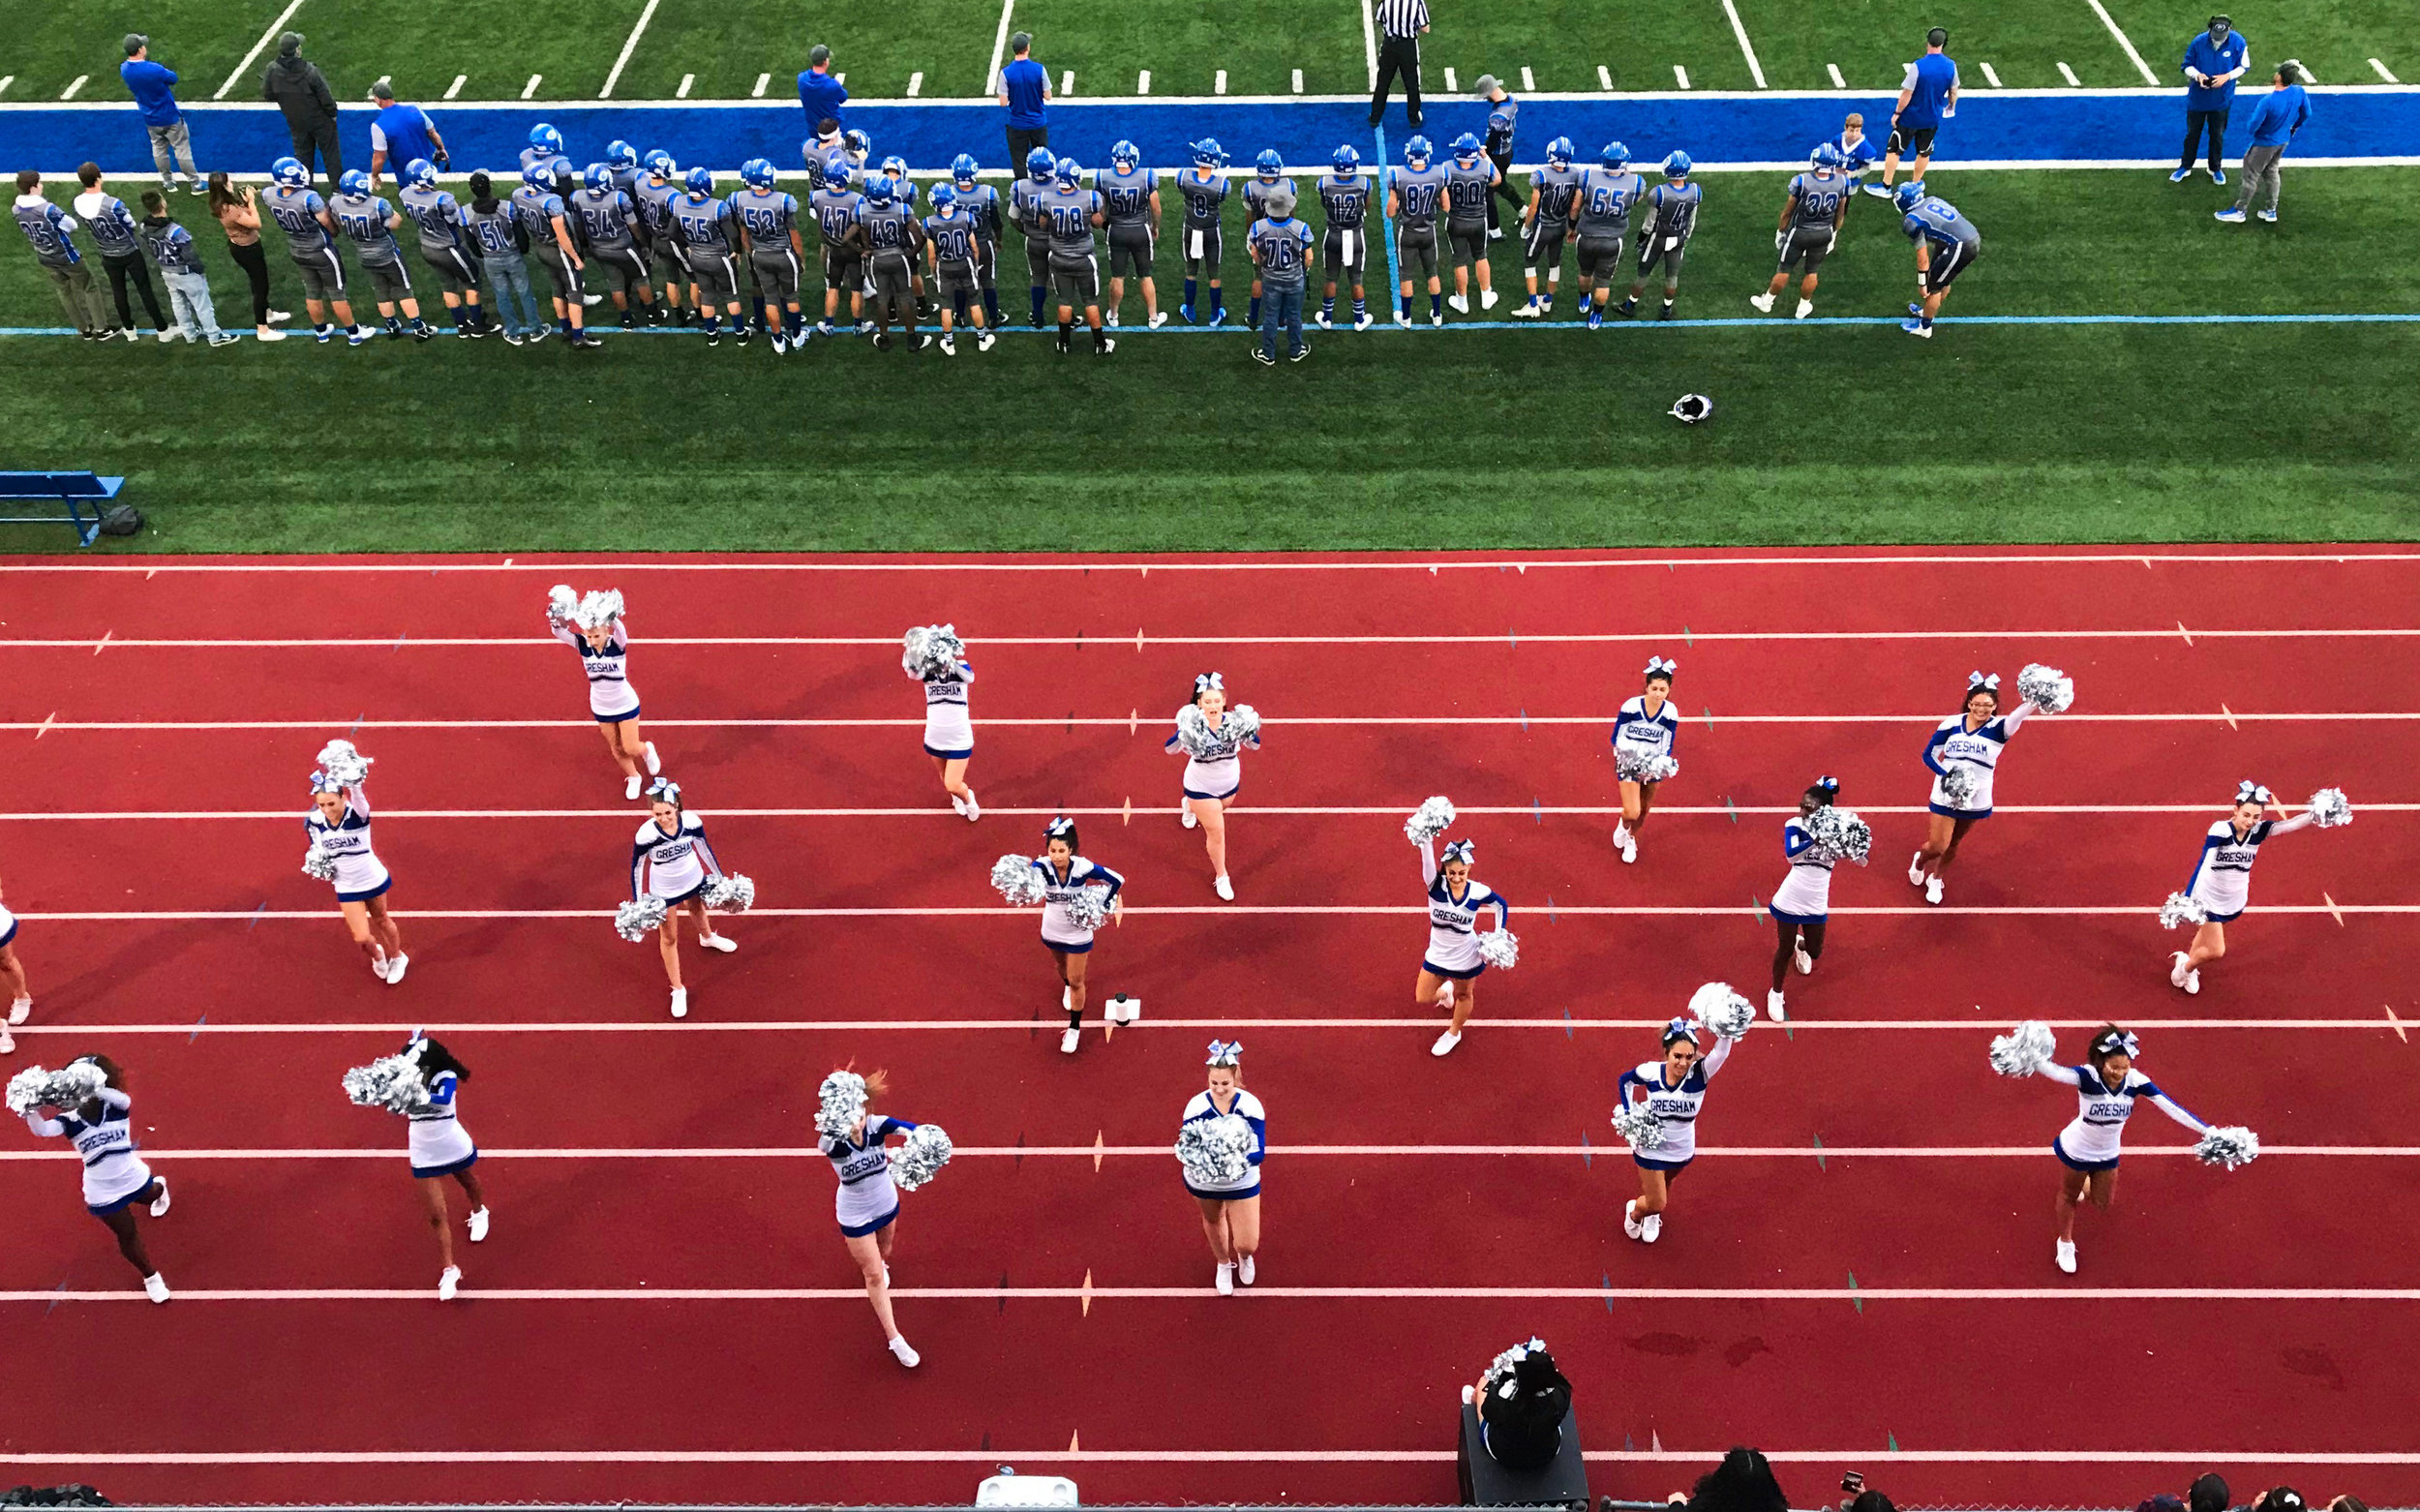 Former Clovis cheerleaders say coach bullied them. So they filed $1.3 million lawsuit - The plaintiffs claim to have suffered anxiety attacks, migraines and flare-ups of medical conditions as a result of the coach's actions, to the point that one of them had to delay her collegiate career for a year, the lawsuit says. Read at the Fresno Bee.